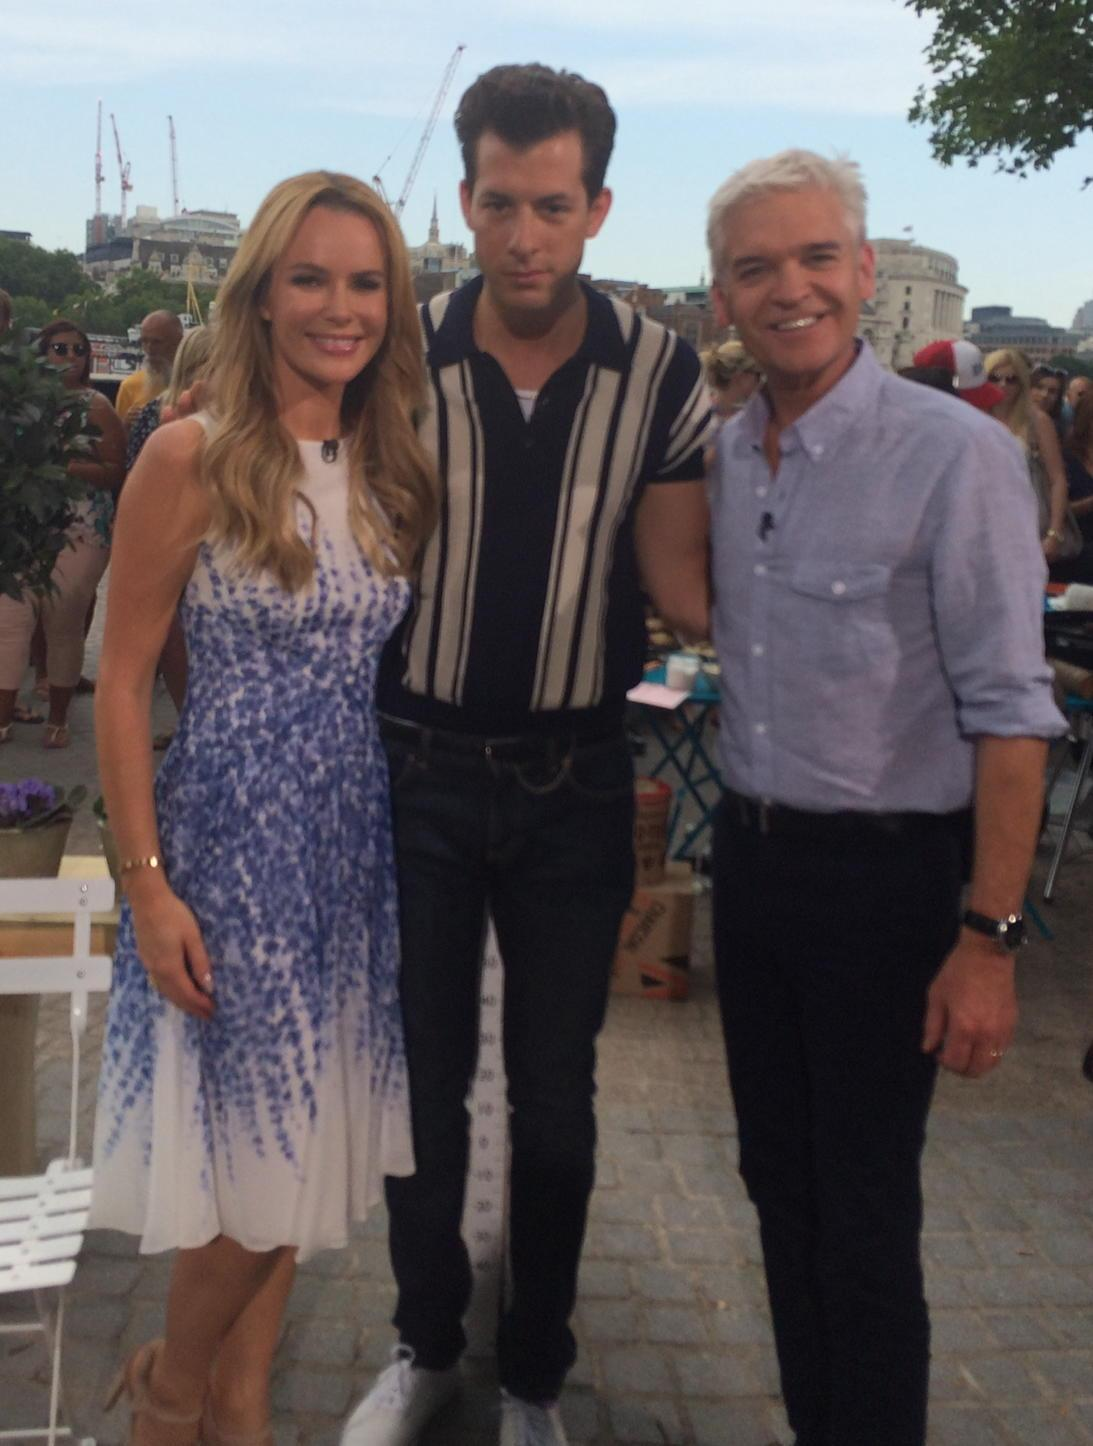 Amazing to meet incredibly talented @markronson on @itvthismorning @Schofe http://t.co/nvr8WTsKy6